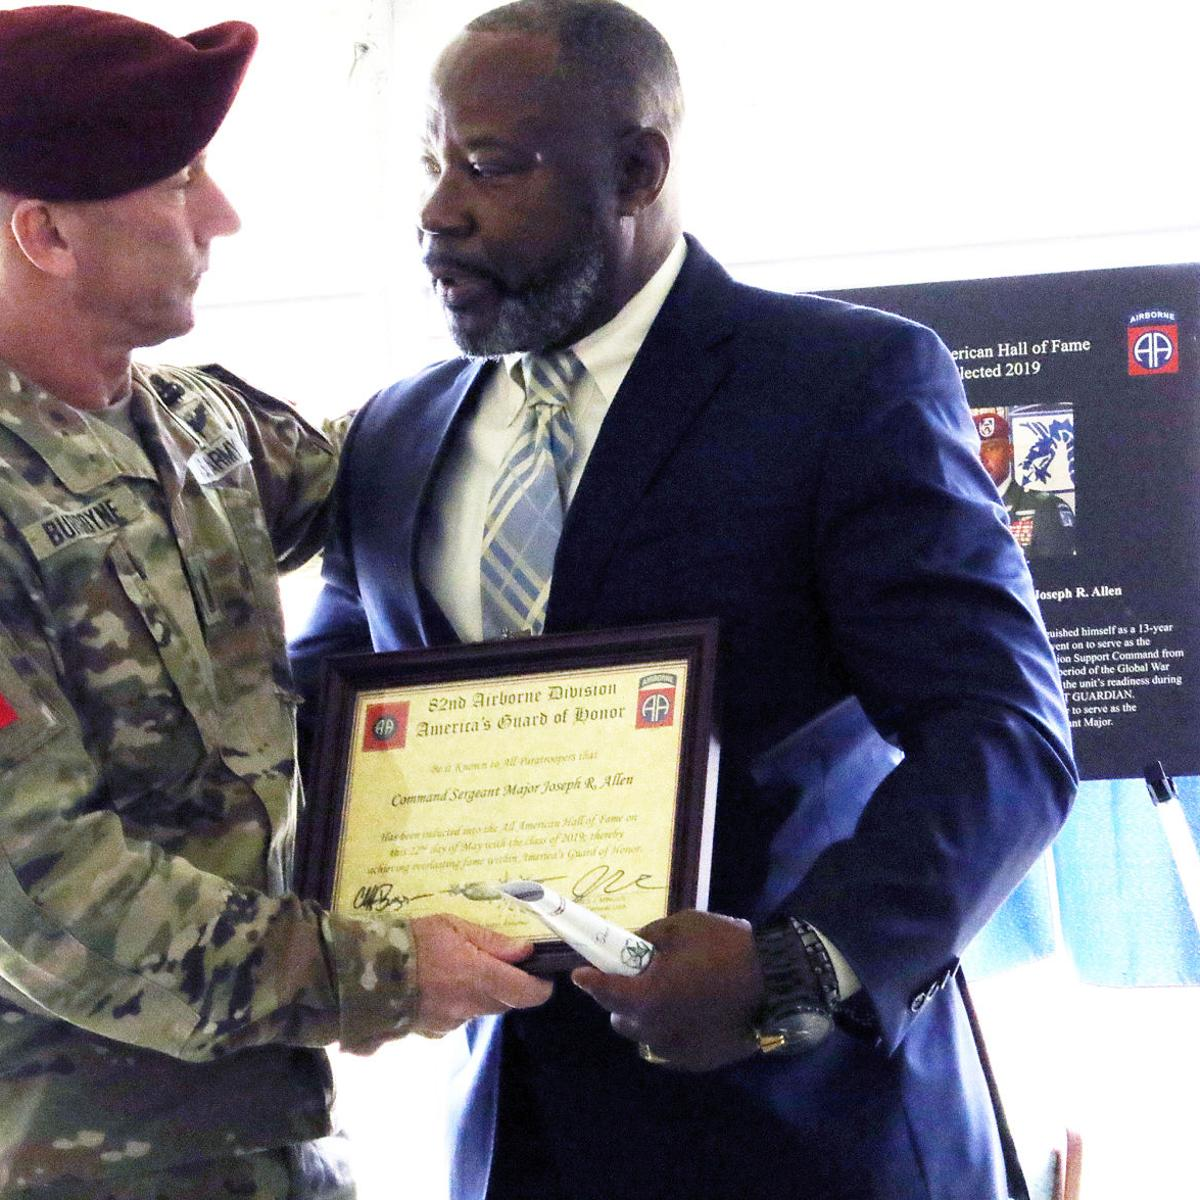 Timmonsville's Allen inducted into 82nd Airborne Division Hall of